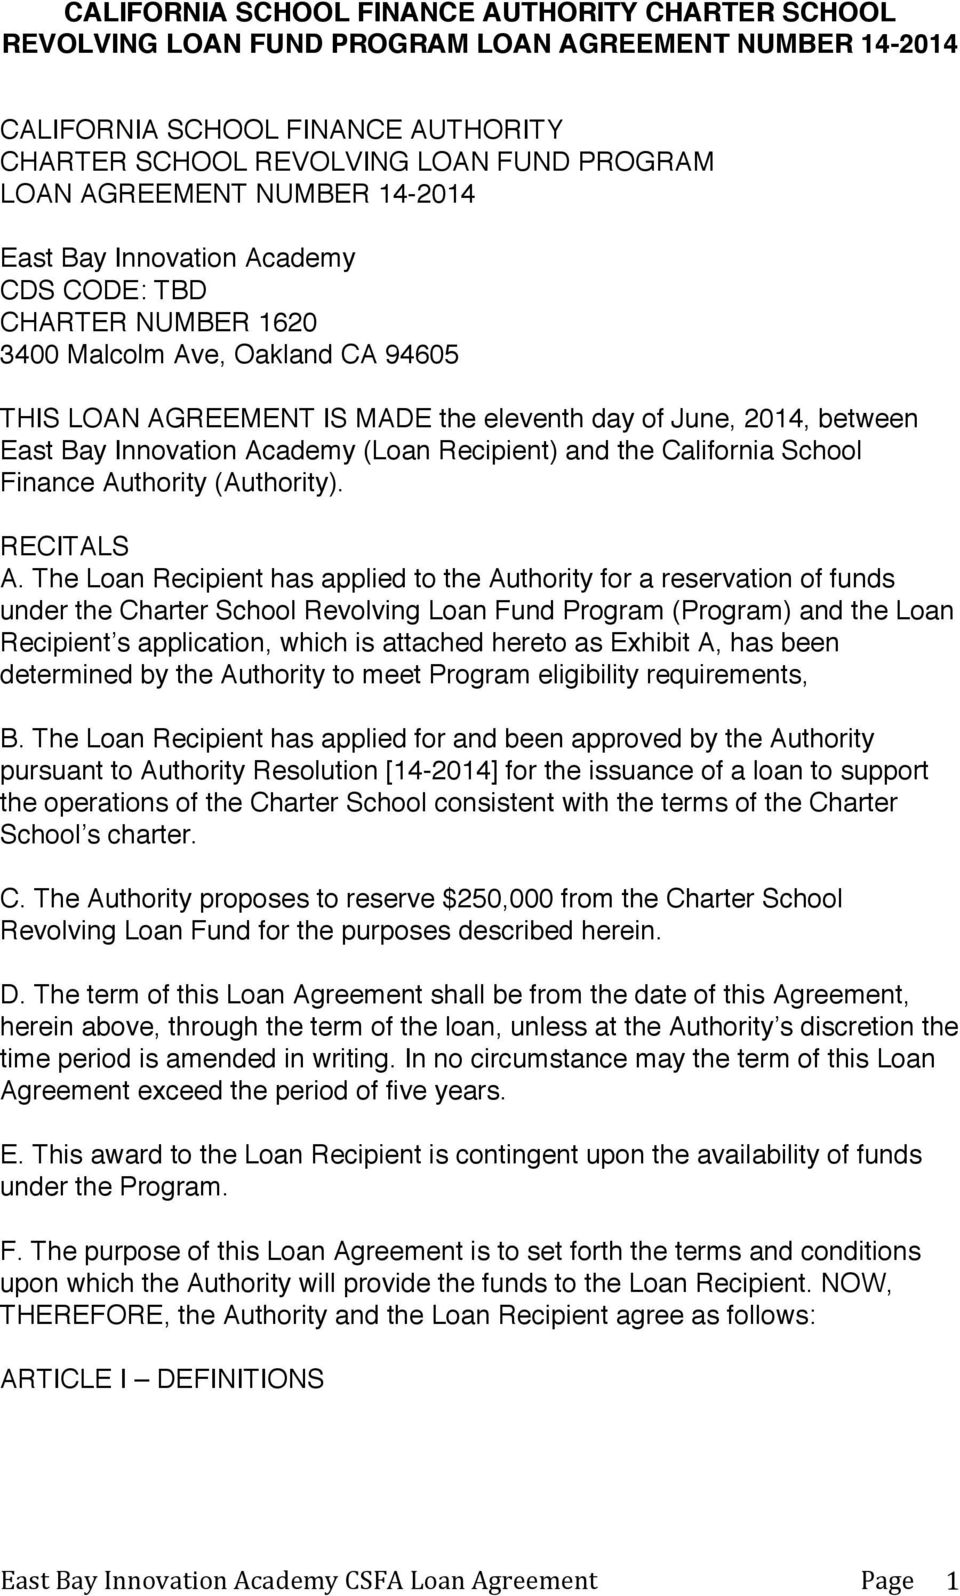 The Loan Recipient has applied to the Authority for a reservation of funds under the Charter School Revolving Loan Fund Program (Program) and the Loan Recipient s application, which is attached